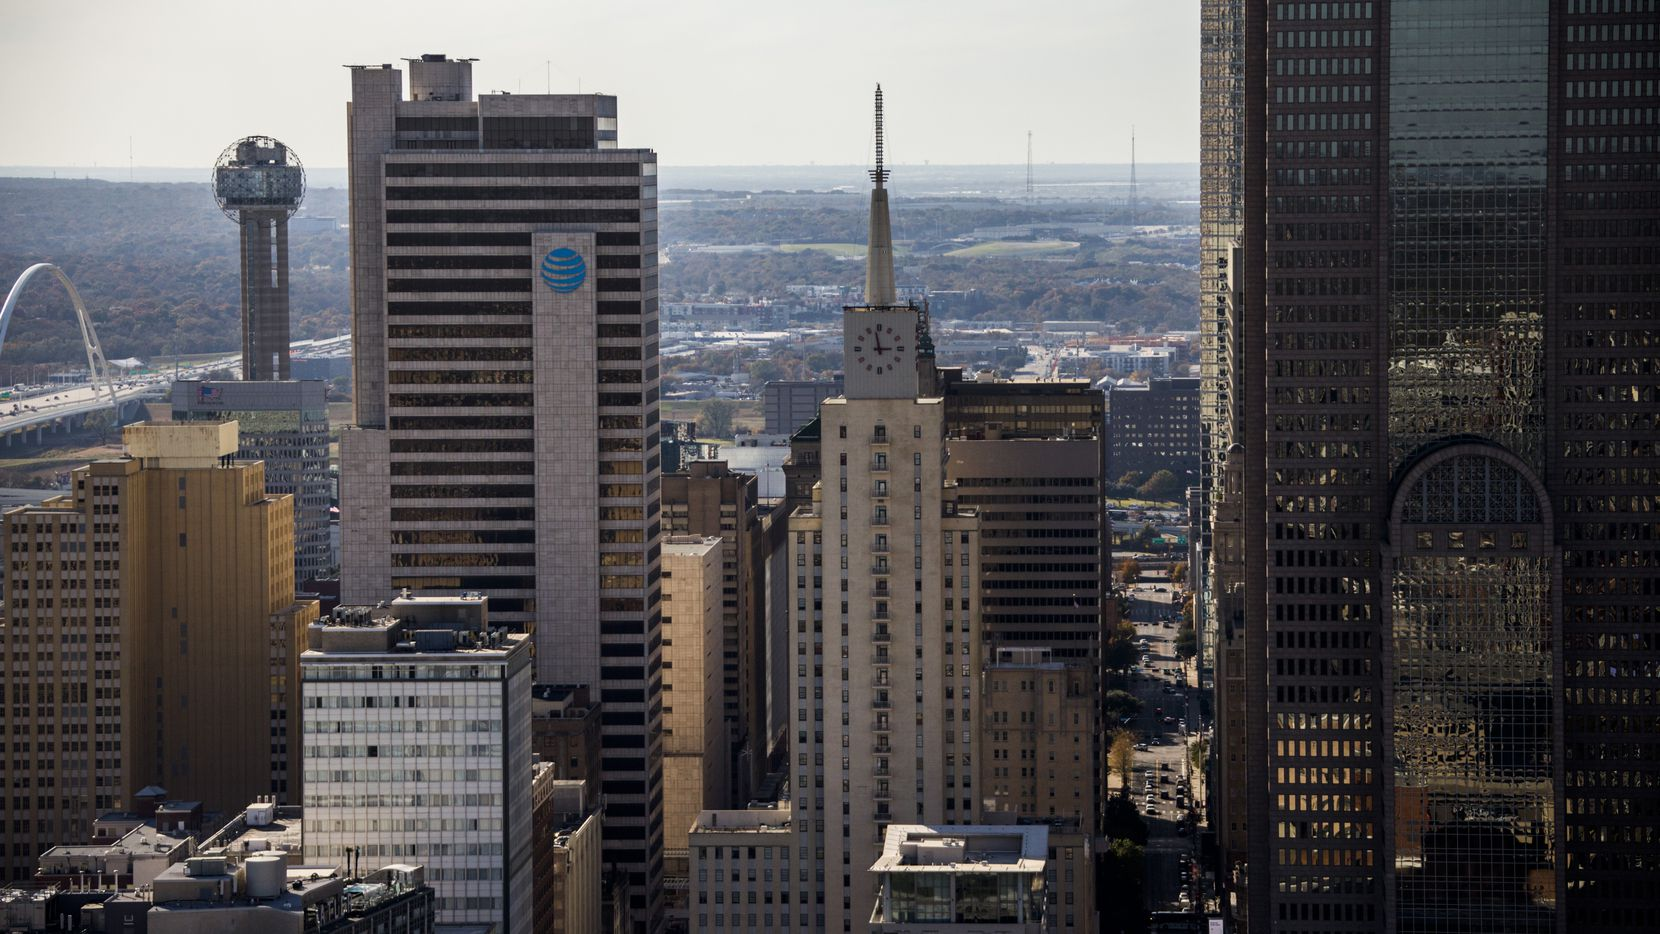 In Dallas, hotels saw about 60% of rooms booked in the second quarter.